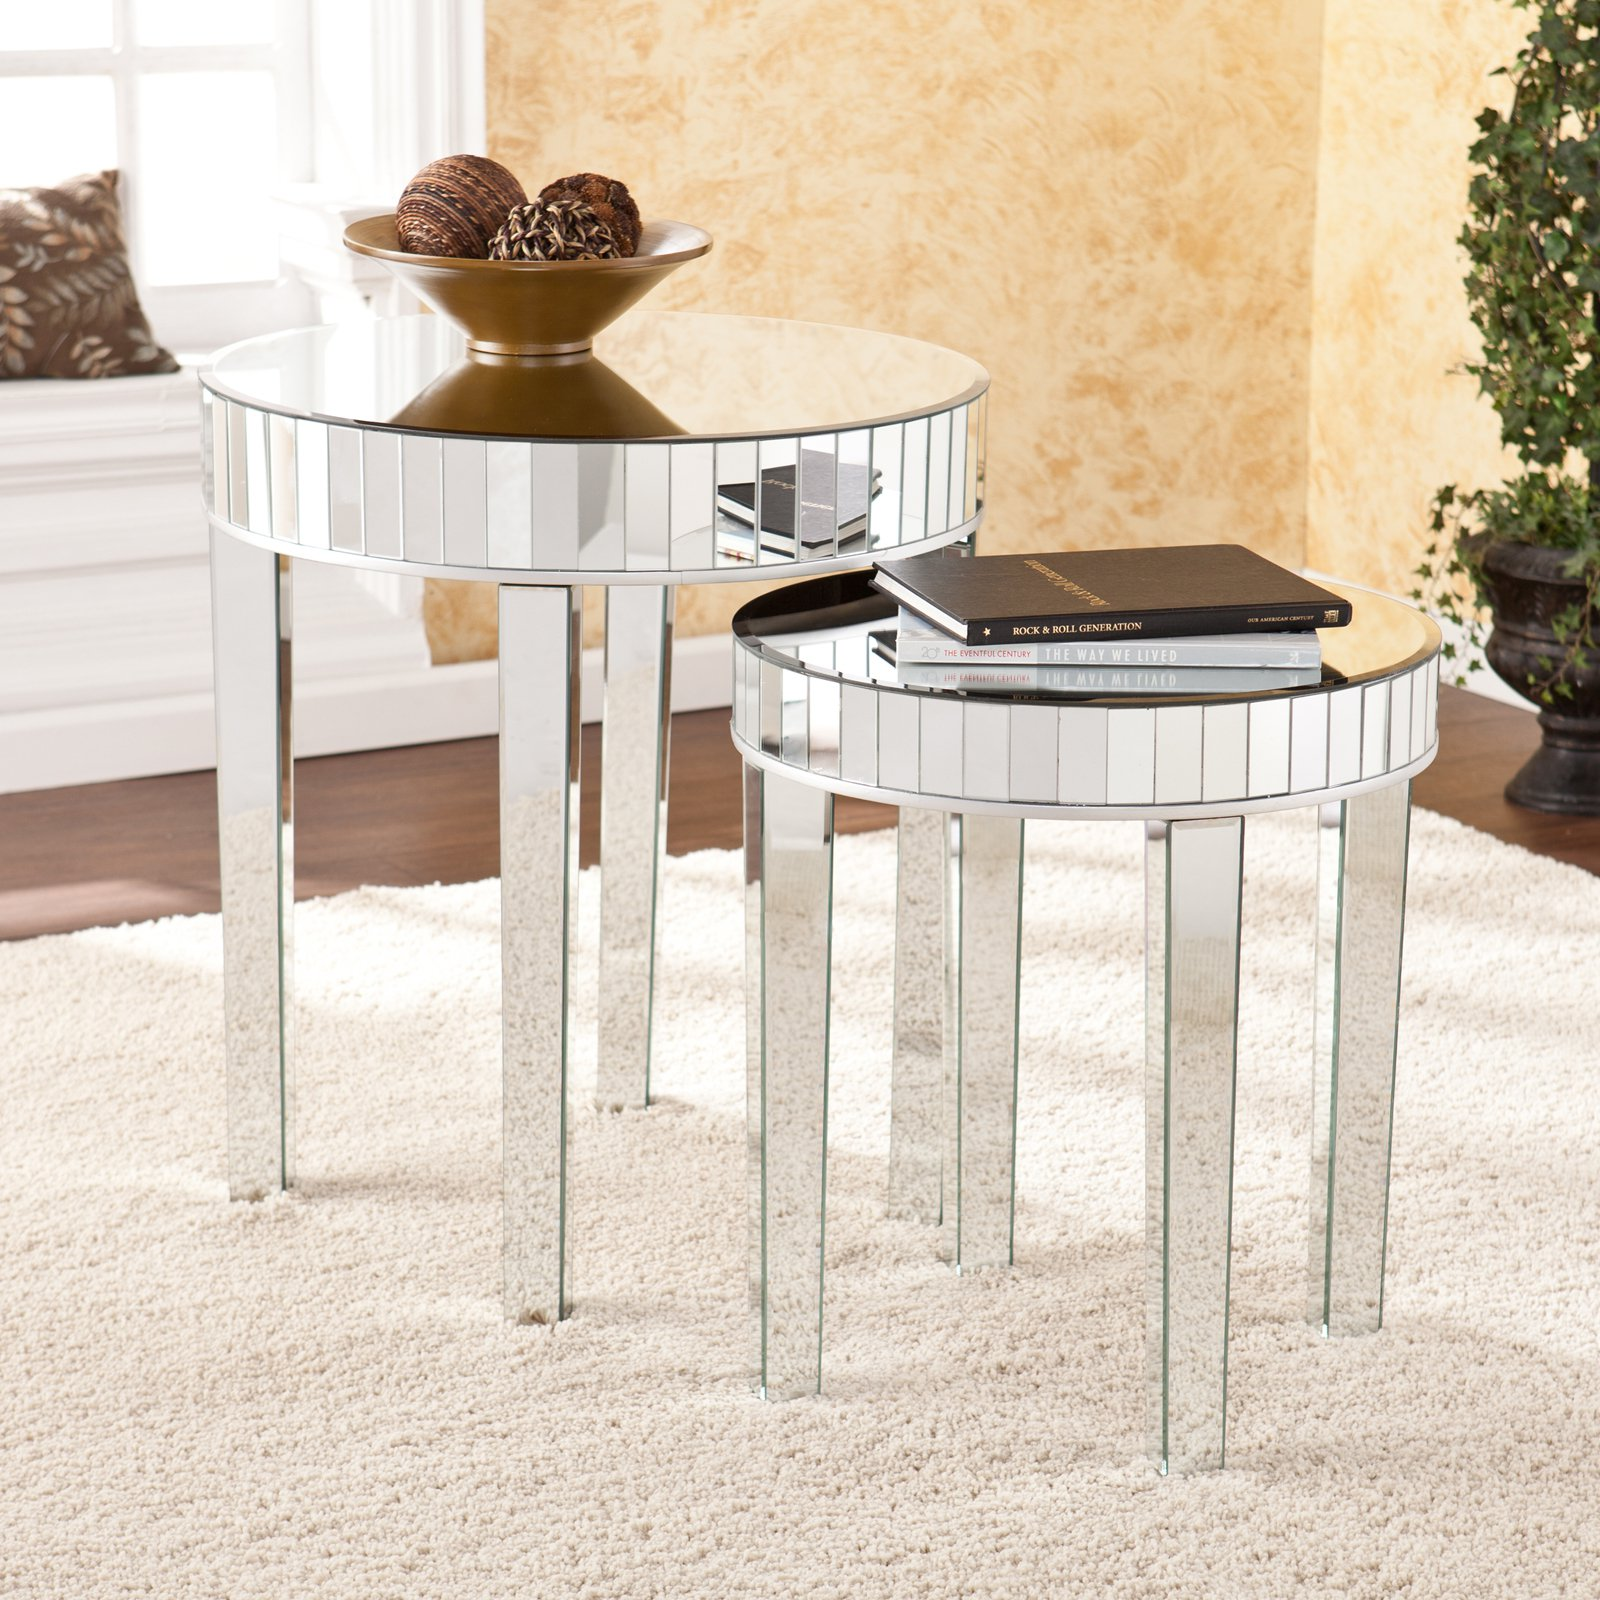 Southern Enterprises Mirrored 2 Piece Round Nesting Table Set